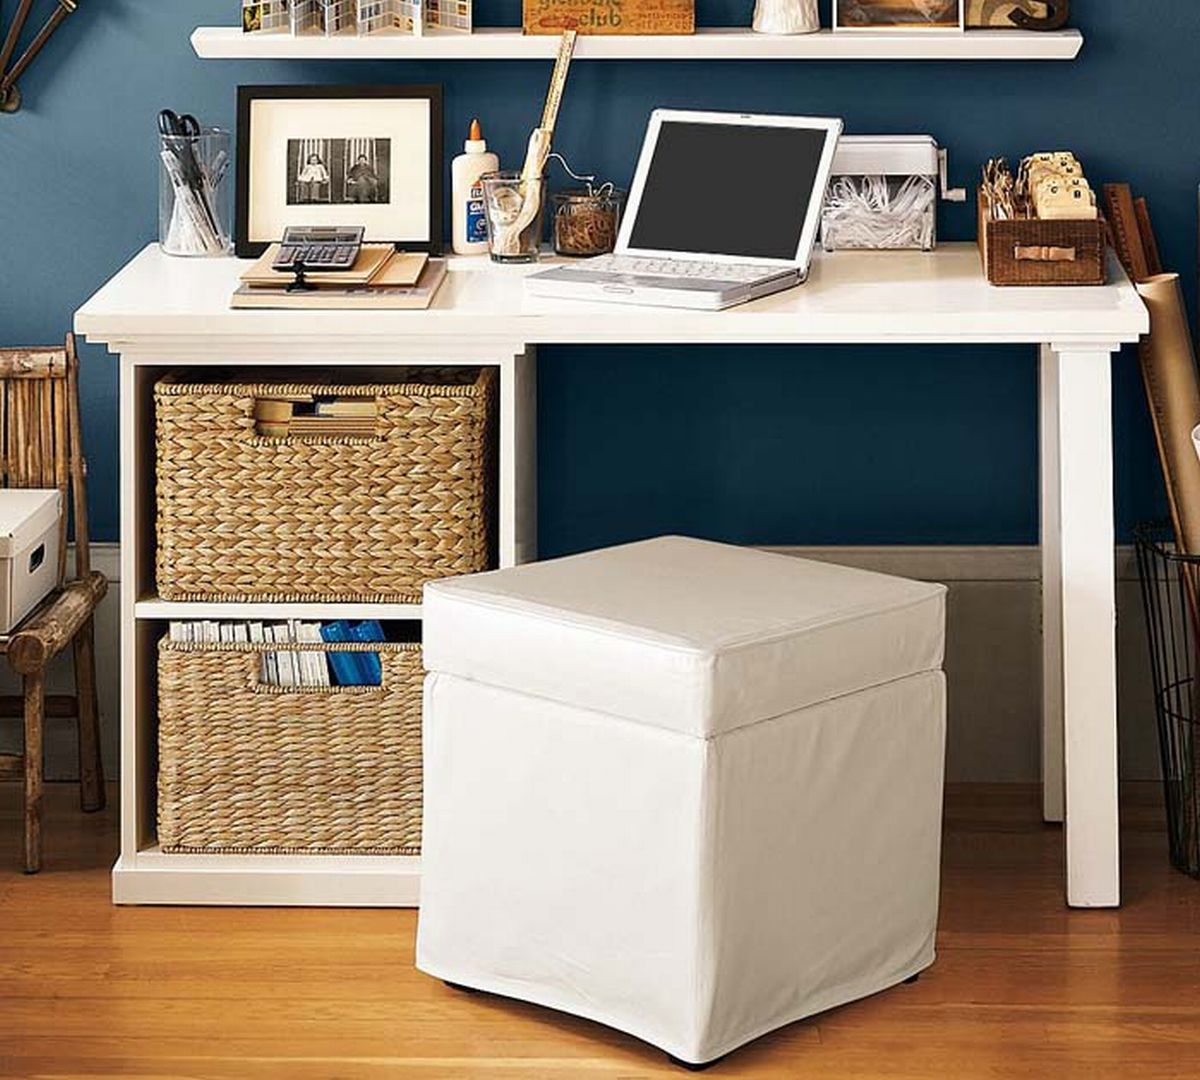 26 Interesting Living Room Décor Ideas Definitive Guide: Desk For College Student